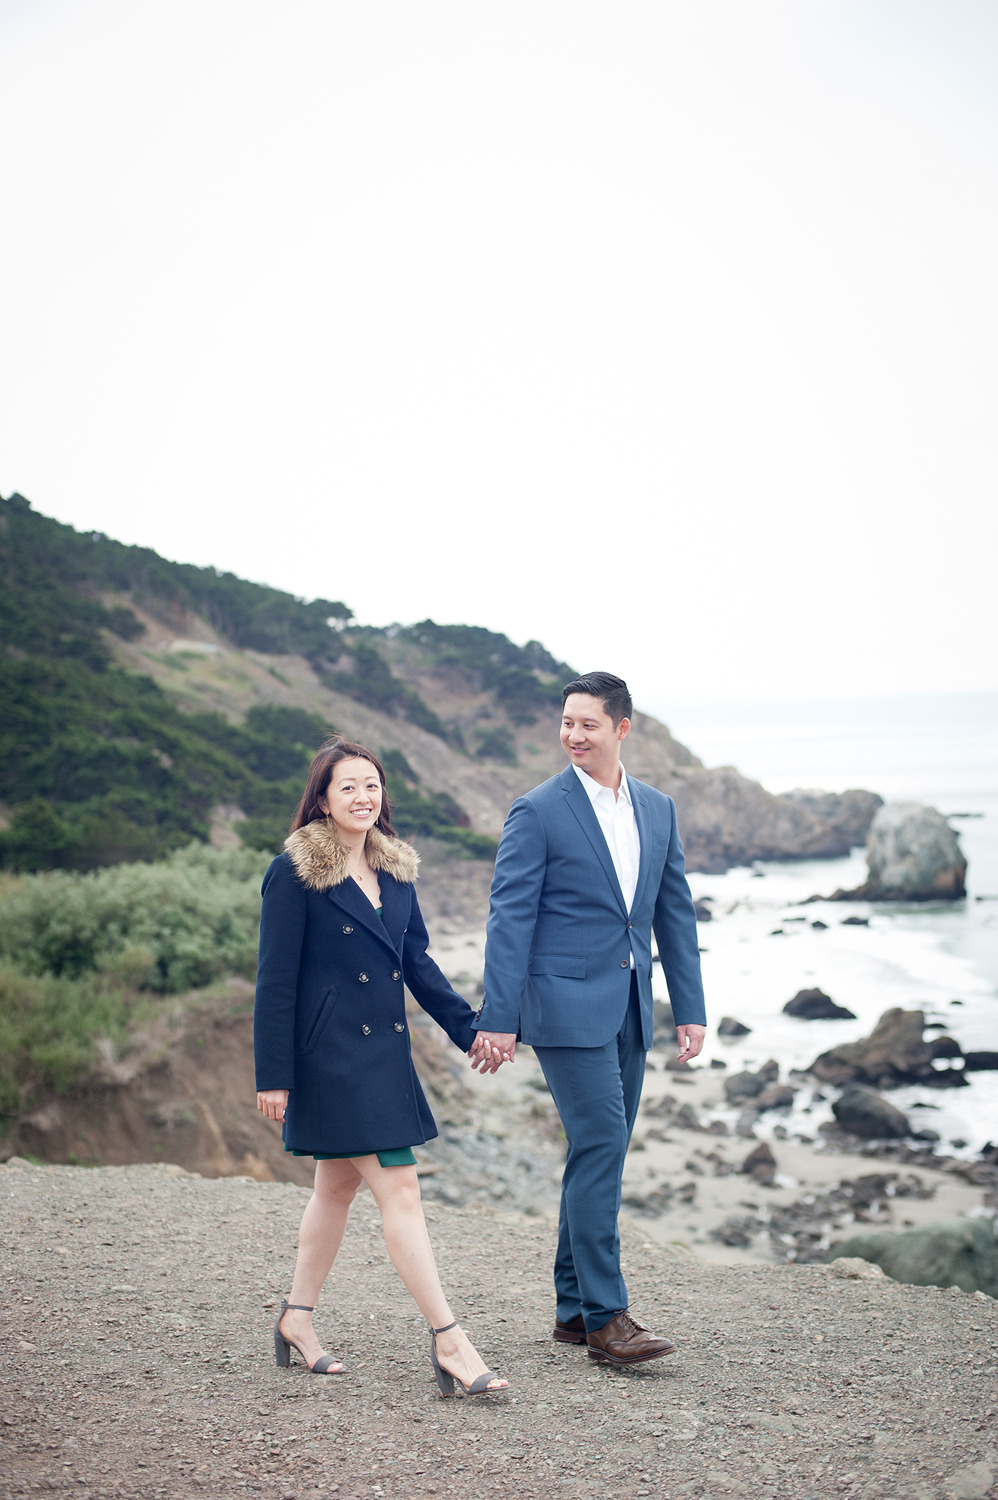 Cindy_John_Engaged_November_20_2017_0068.jpg